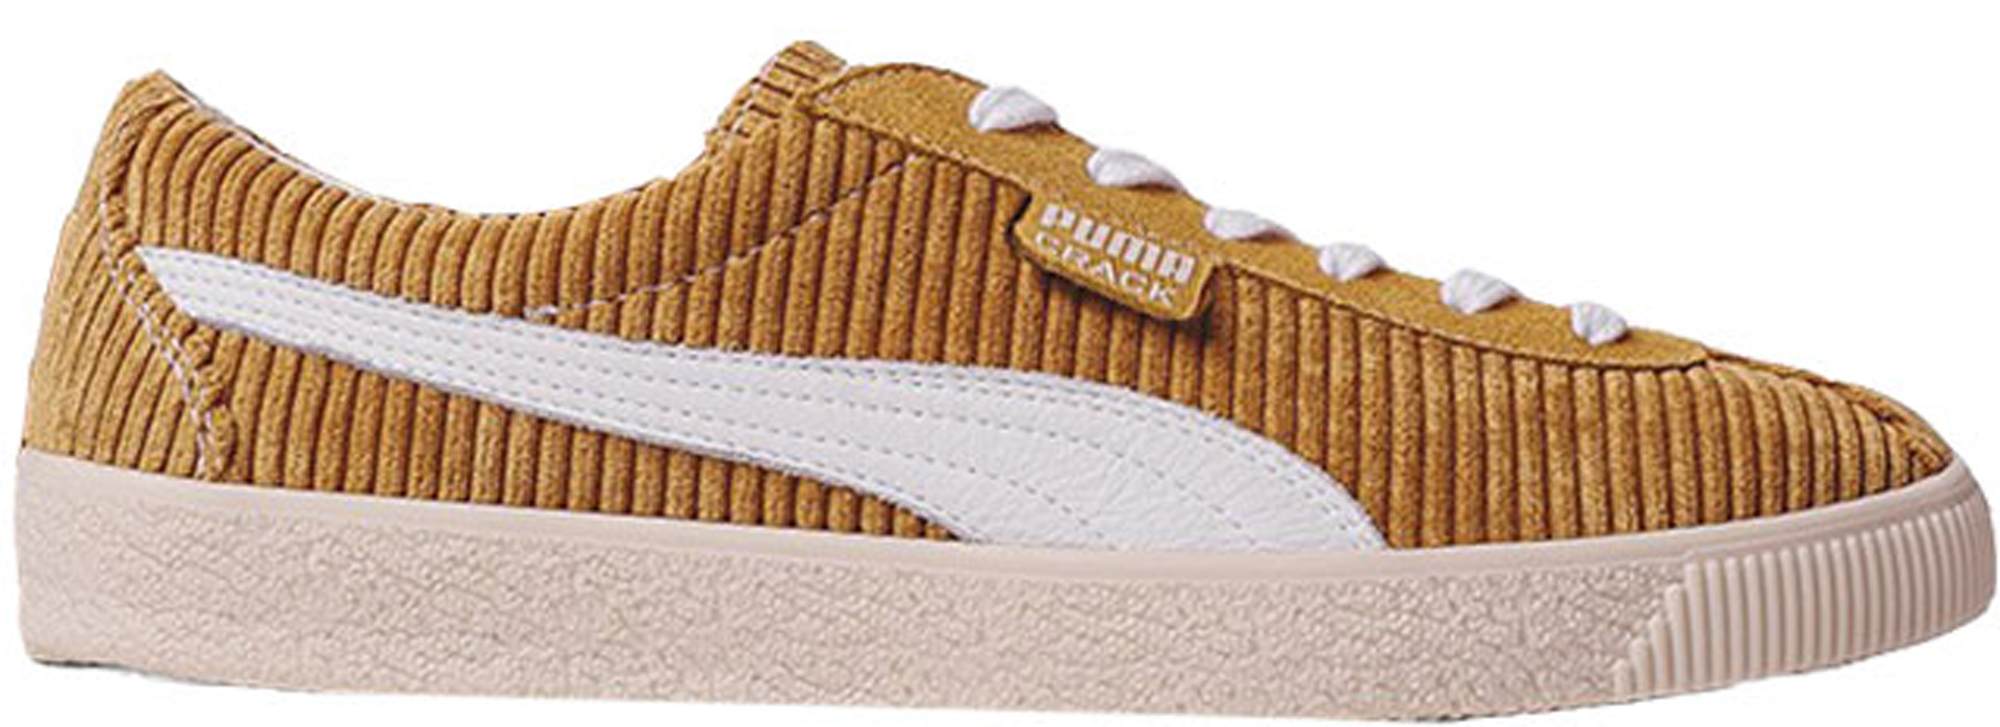 Puma Crack David Obadia Yellow